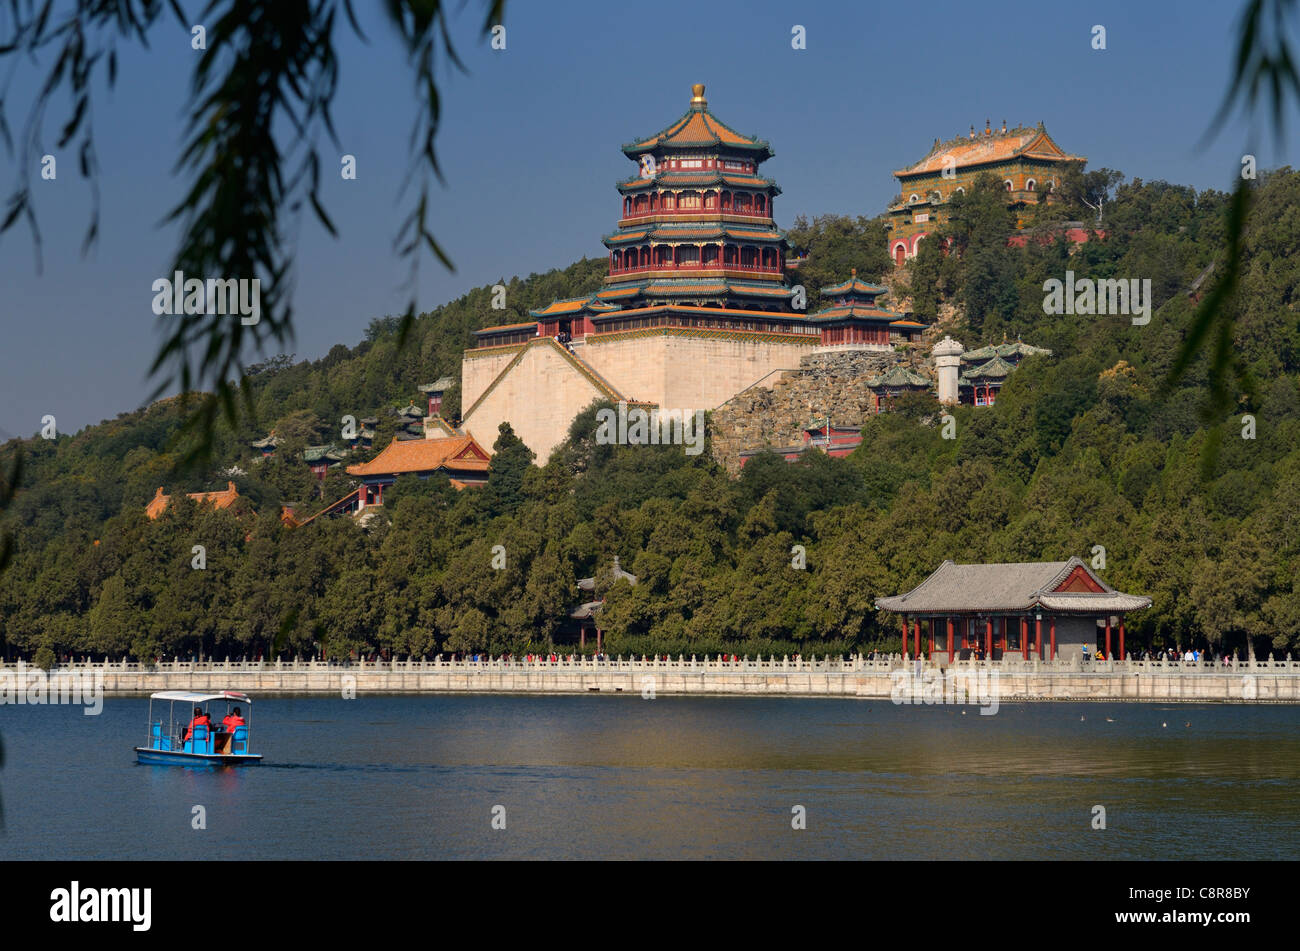 Paddle boaters on Kunming Lake with Buddhist Fragrance and Sea of Wisdom temples at Summer Palace Beijing China - Stock Image